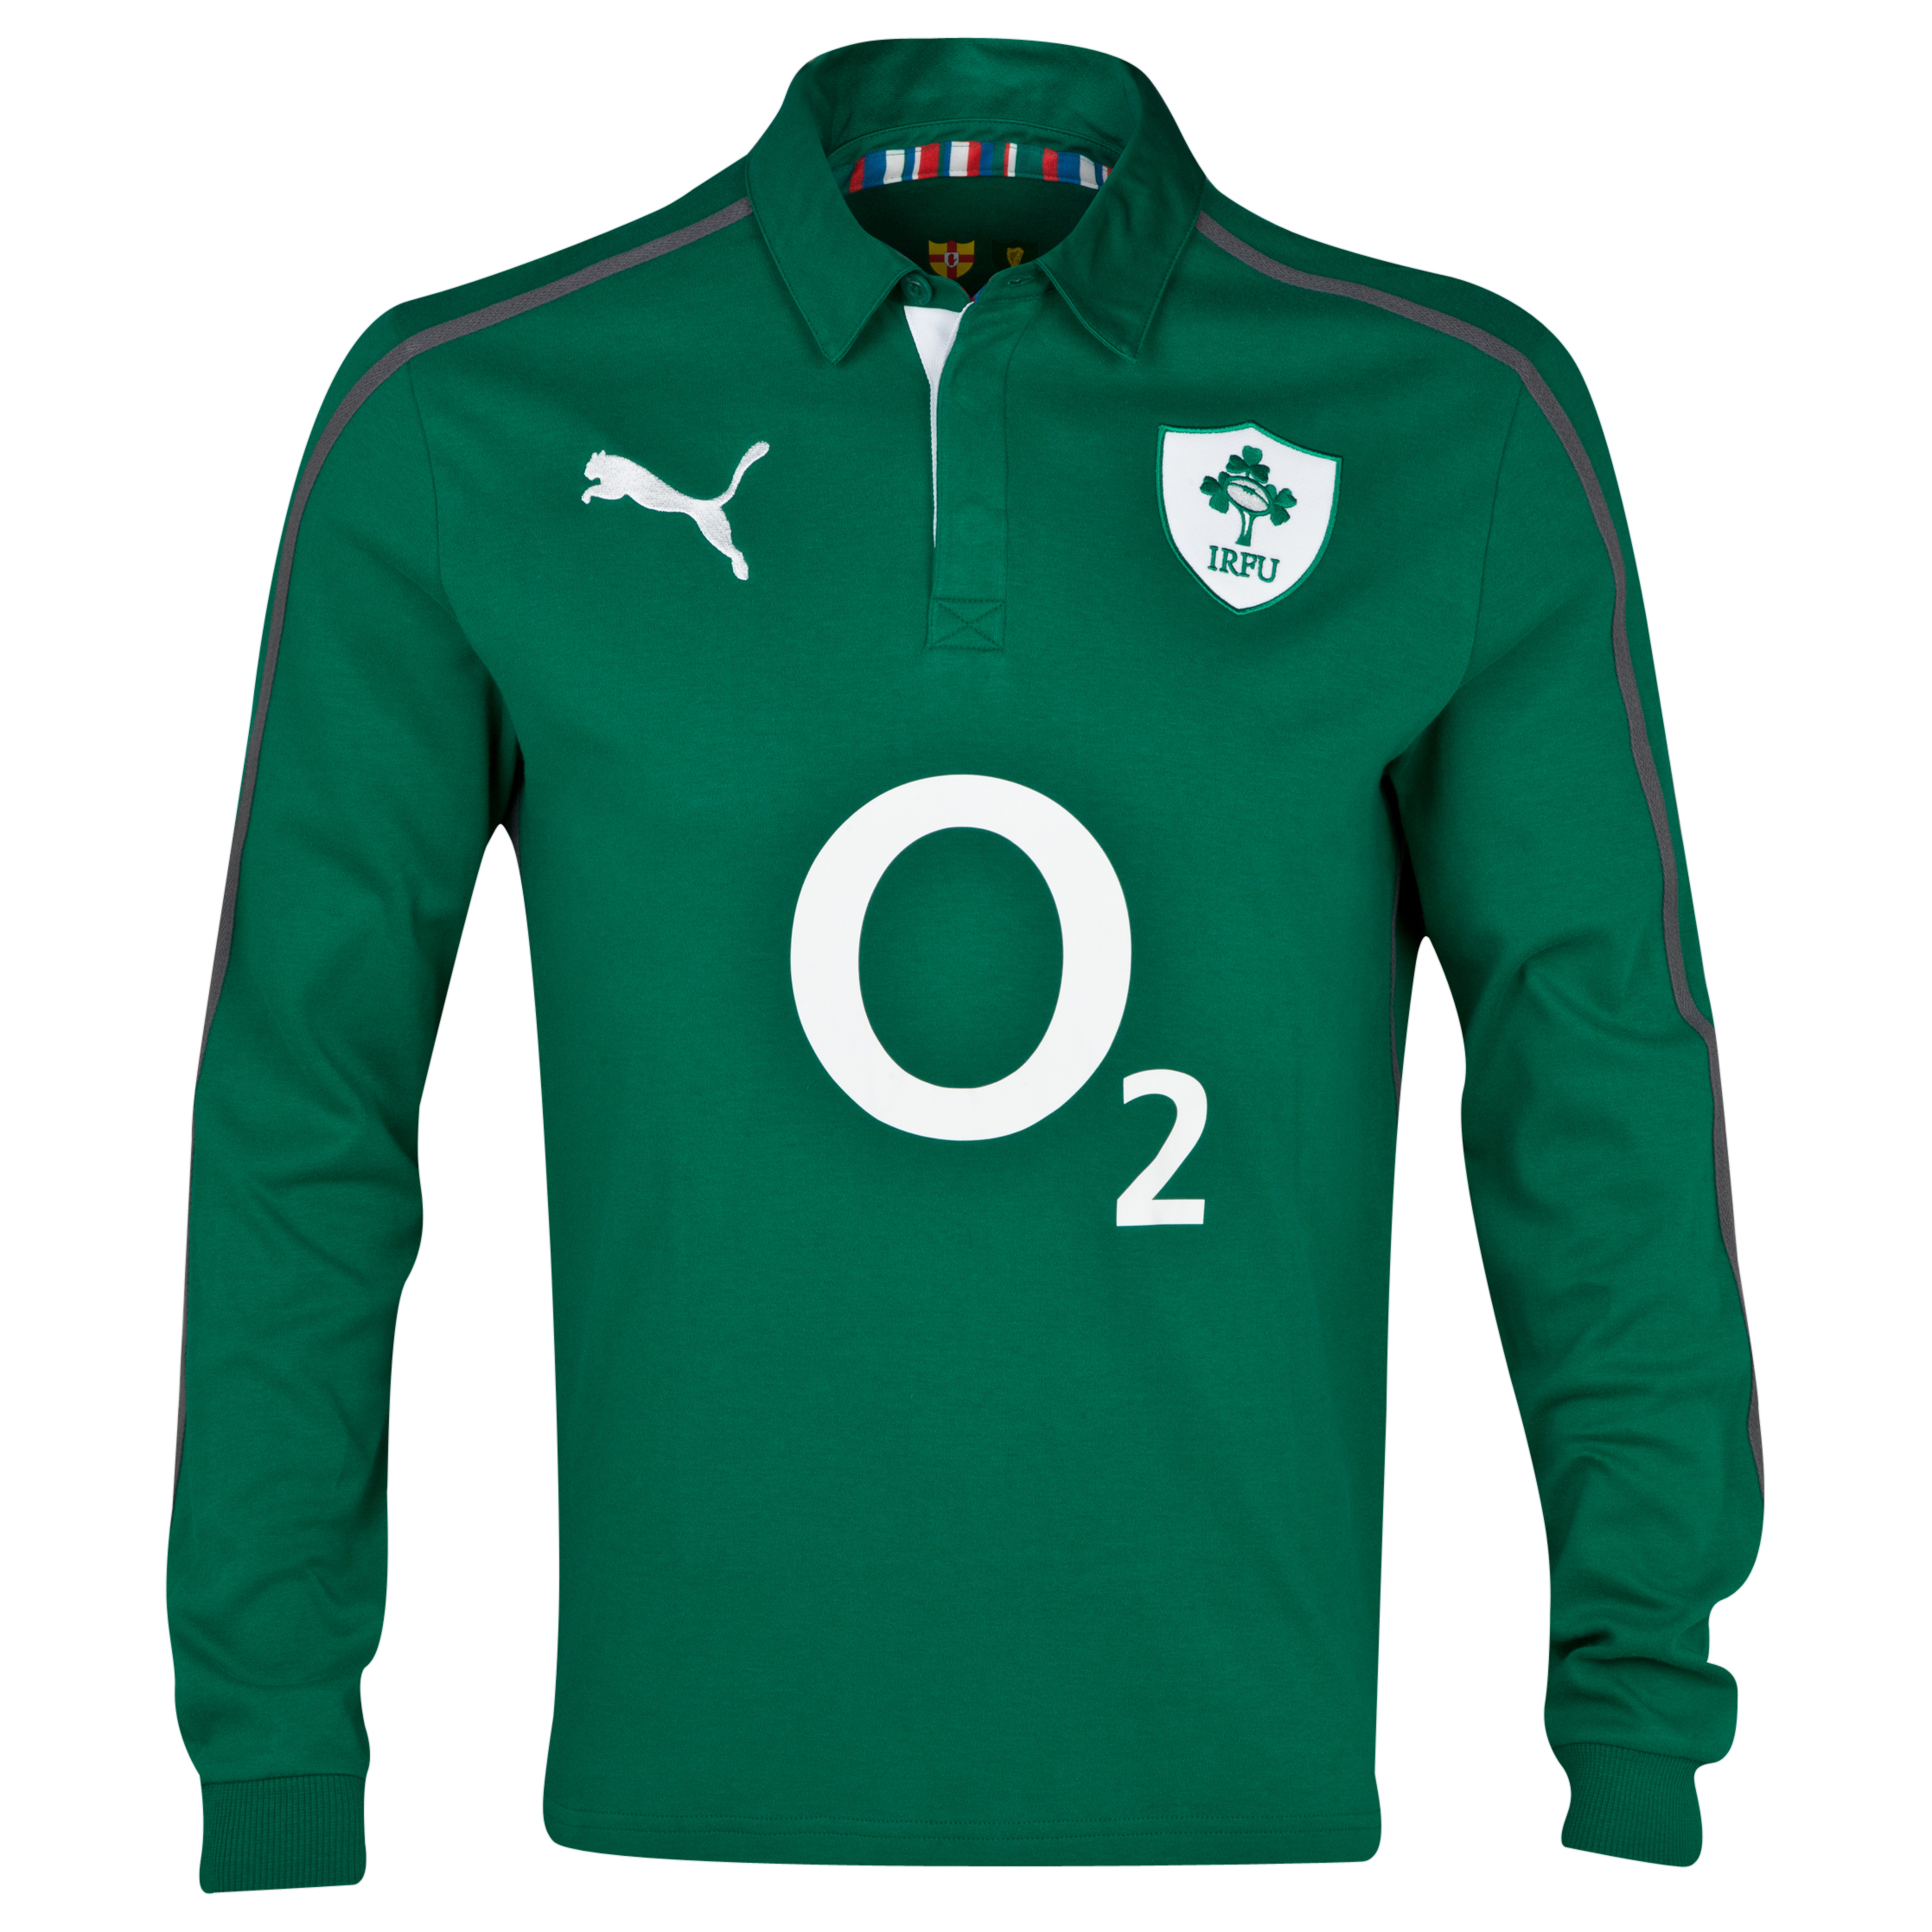 Ireland Cotton Home Shirt 2013/14 - Long Sleeve